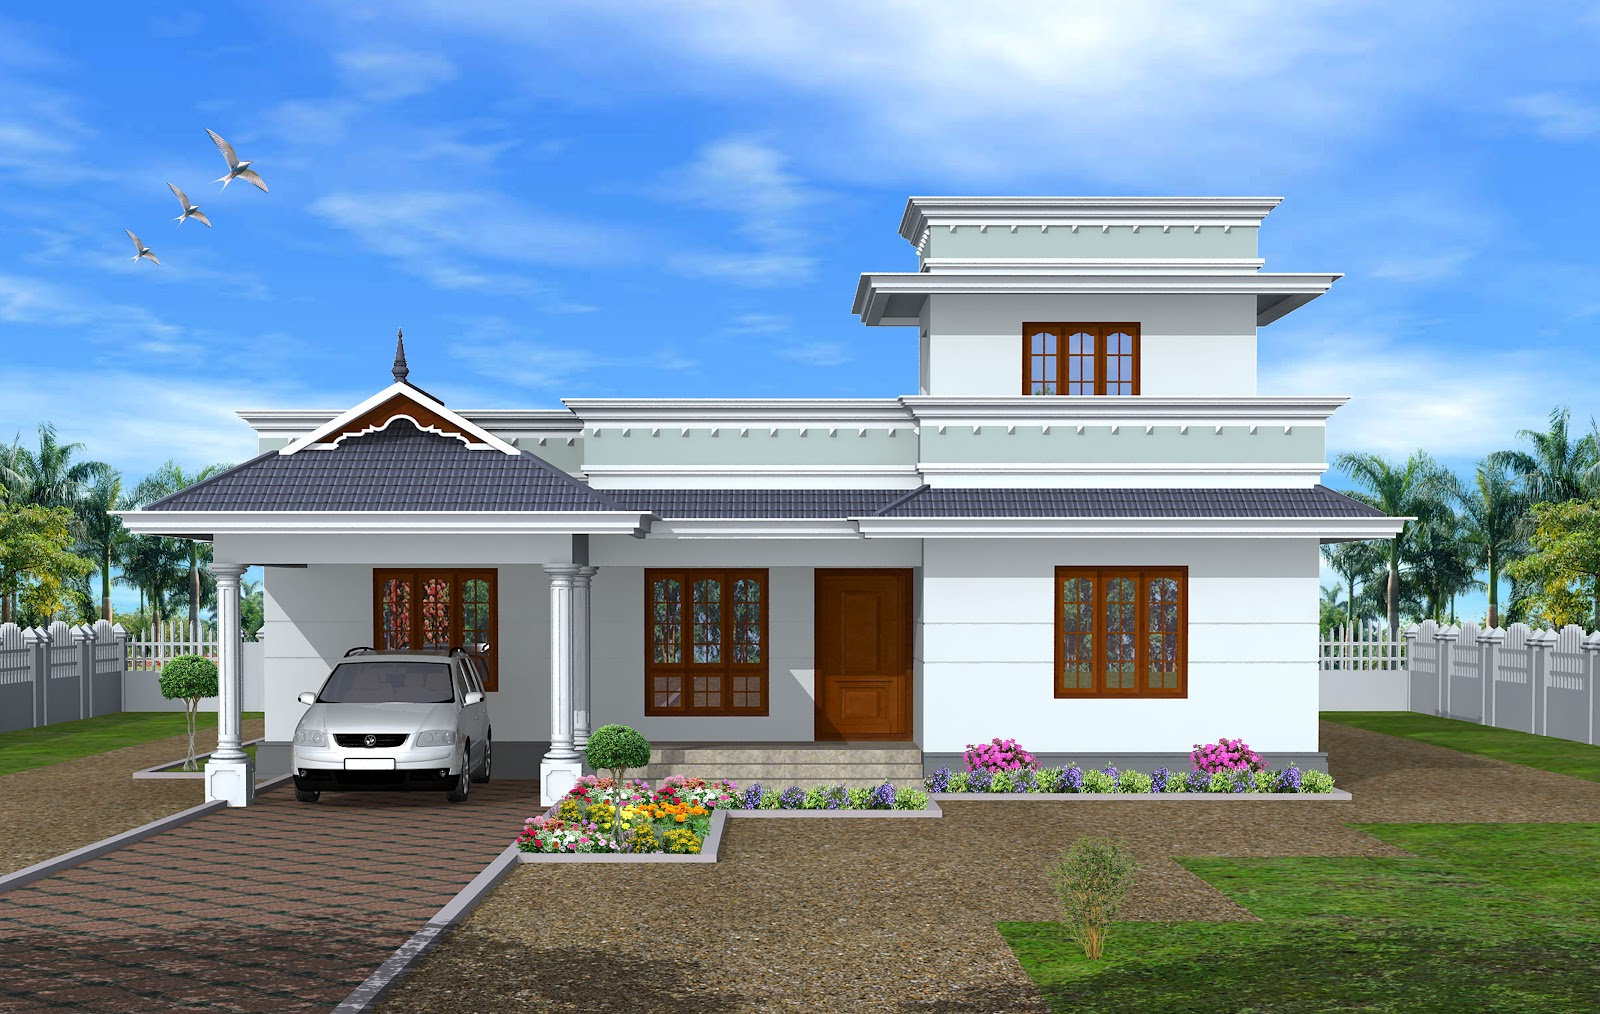 Green homes construction single floor kerala model house for Home design 4u kerala